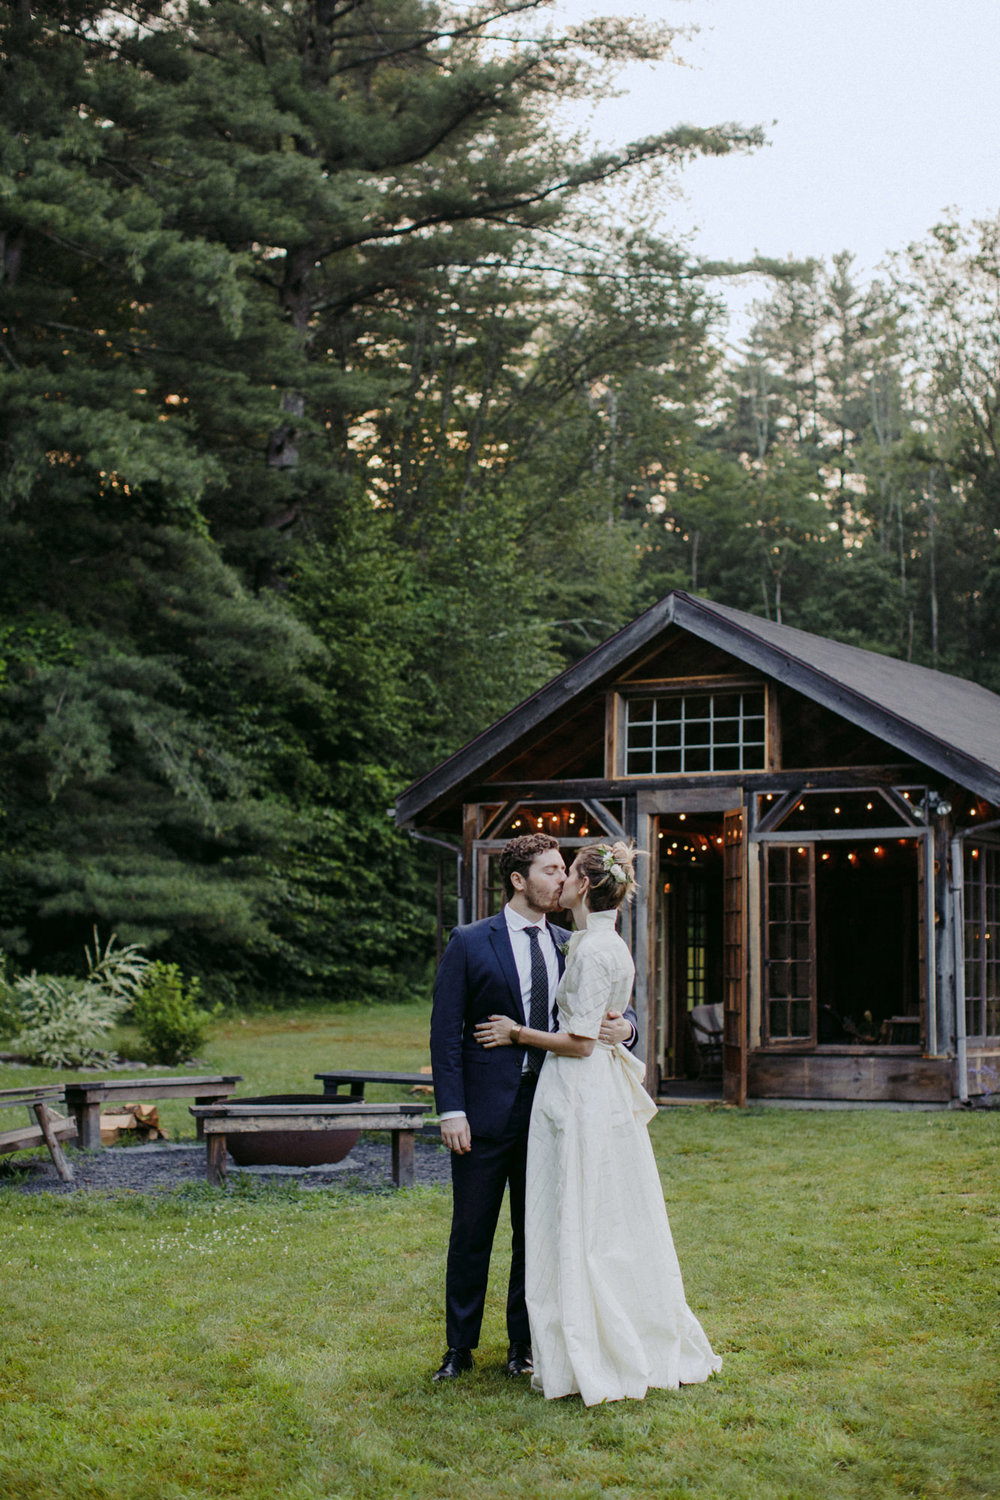 FOXFIREMOUNTAINHOUSE_CATSKILLS_WEDDING_SAMMBLAKE_PJW_0783.jpg